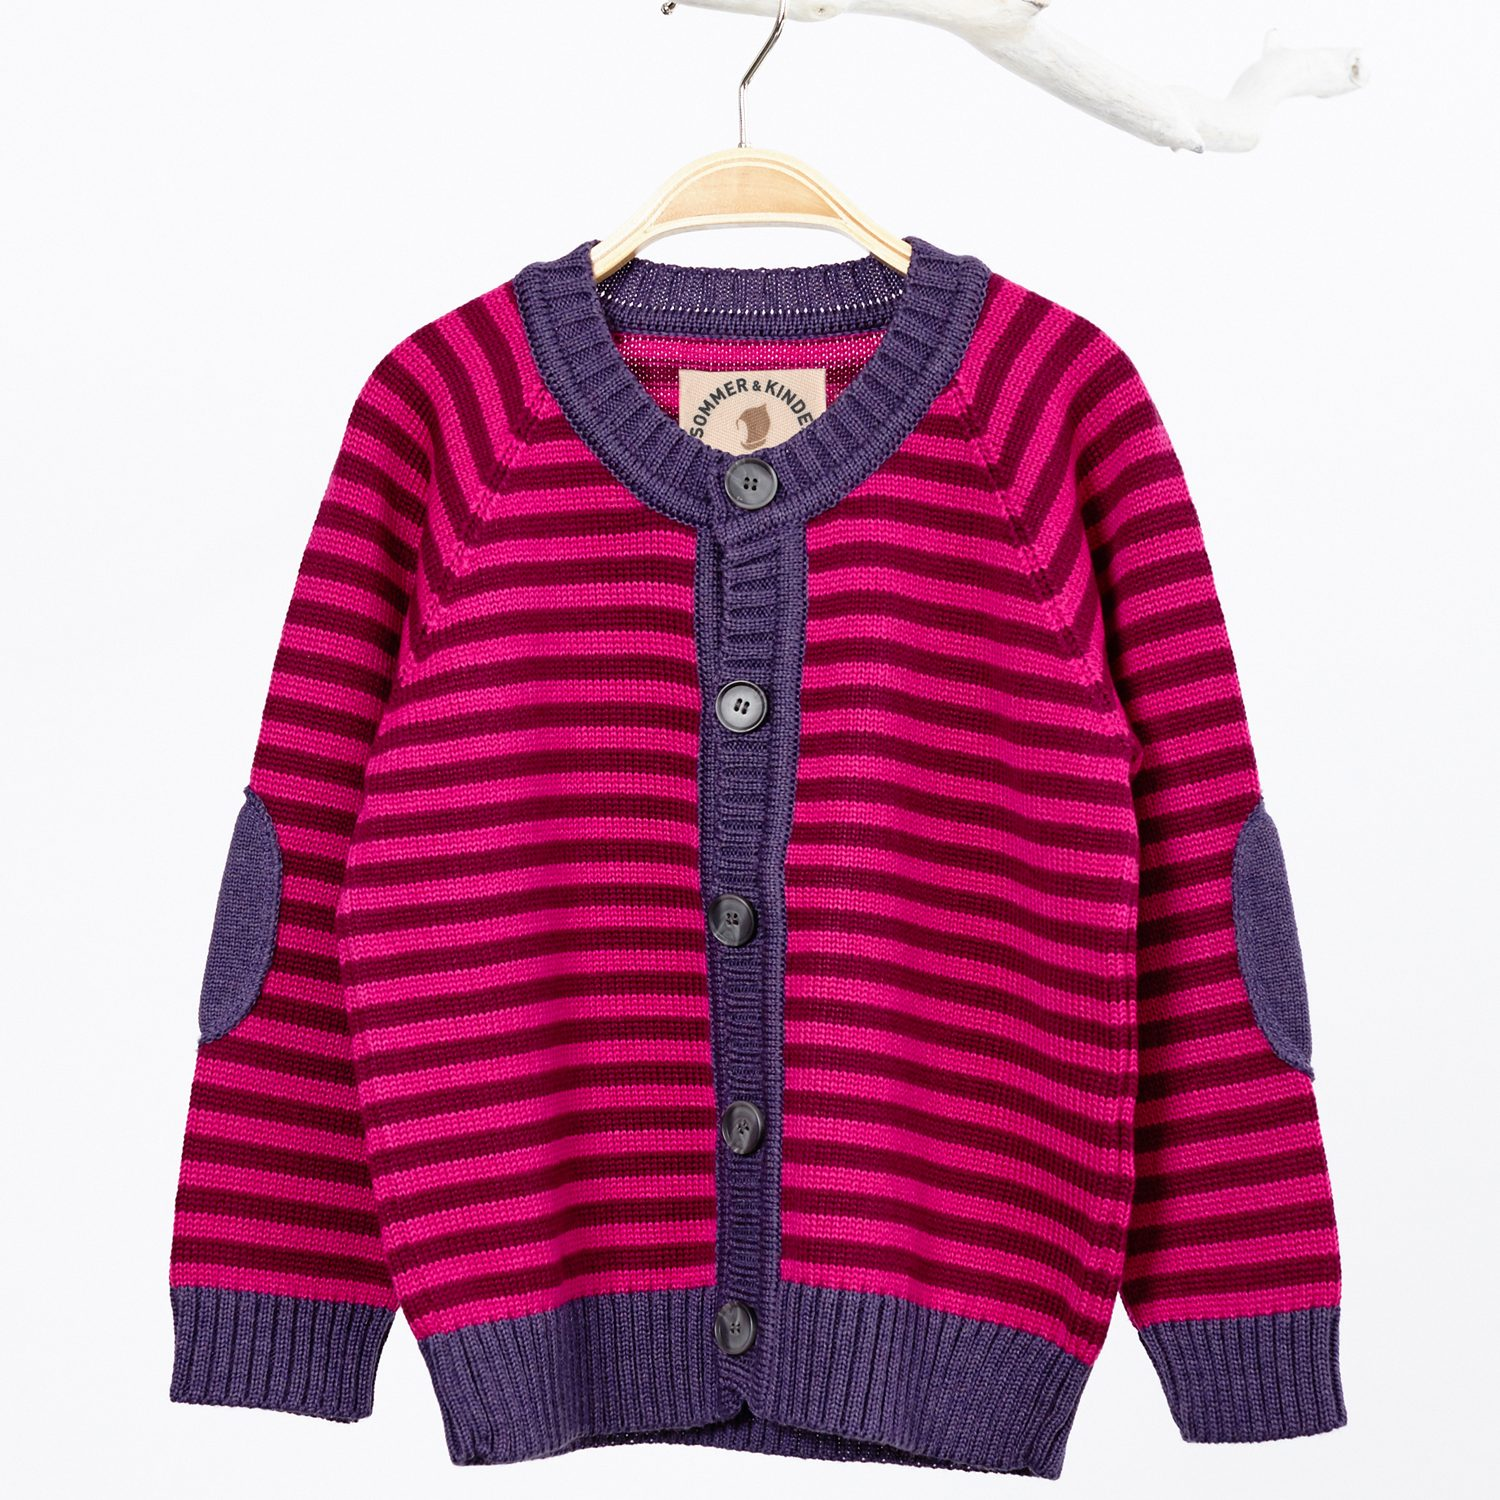 Kinder-Strickjacke lila-pink